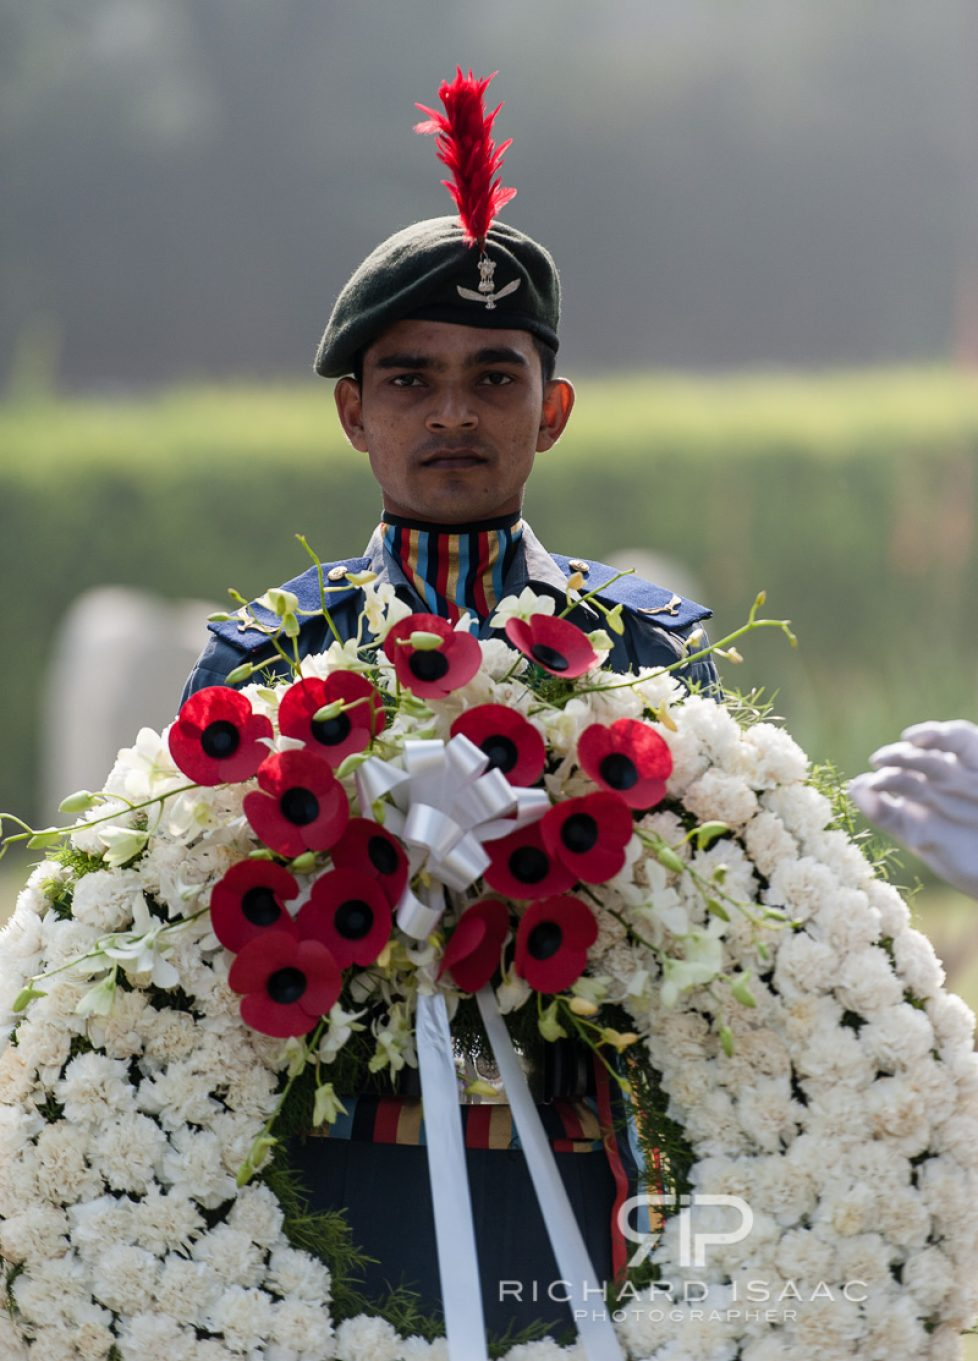 wpid-11-11-2012_Remembrance_Sunday_2012_India_Delhi_08.jpg